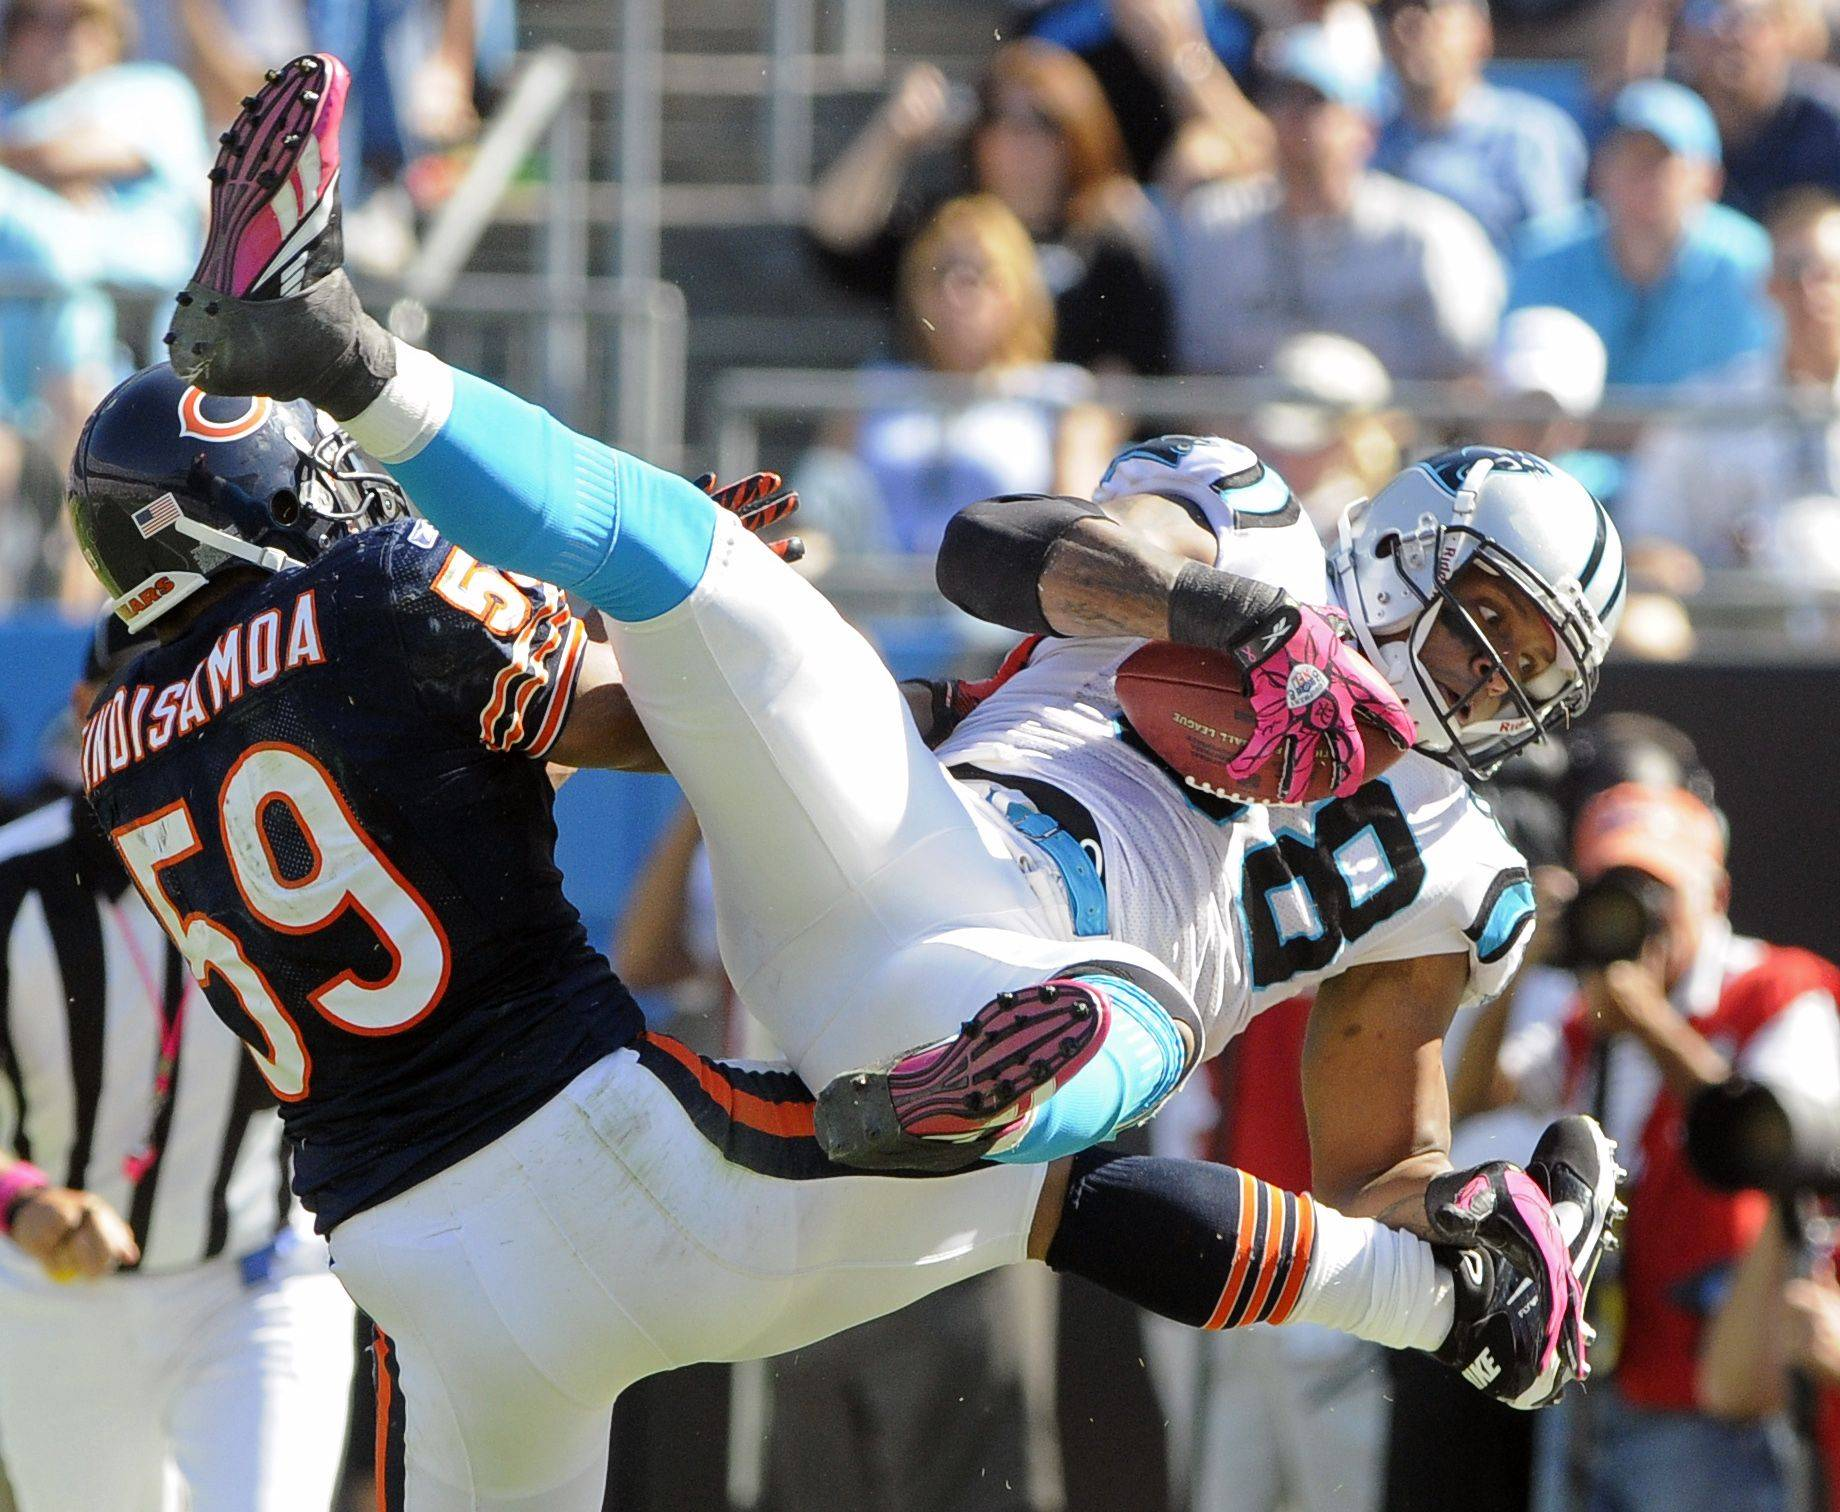 Carolina Panthers' Dante Rosario is upended by Chicago Bears' Pisa Tinoisamoa in the second half.